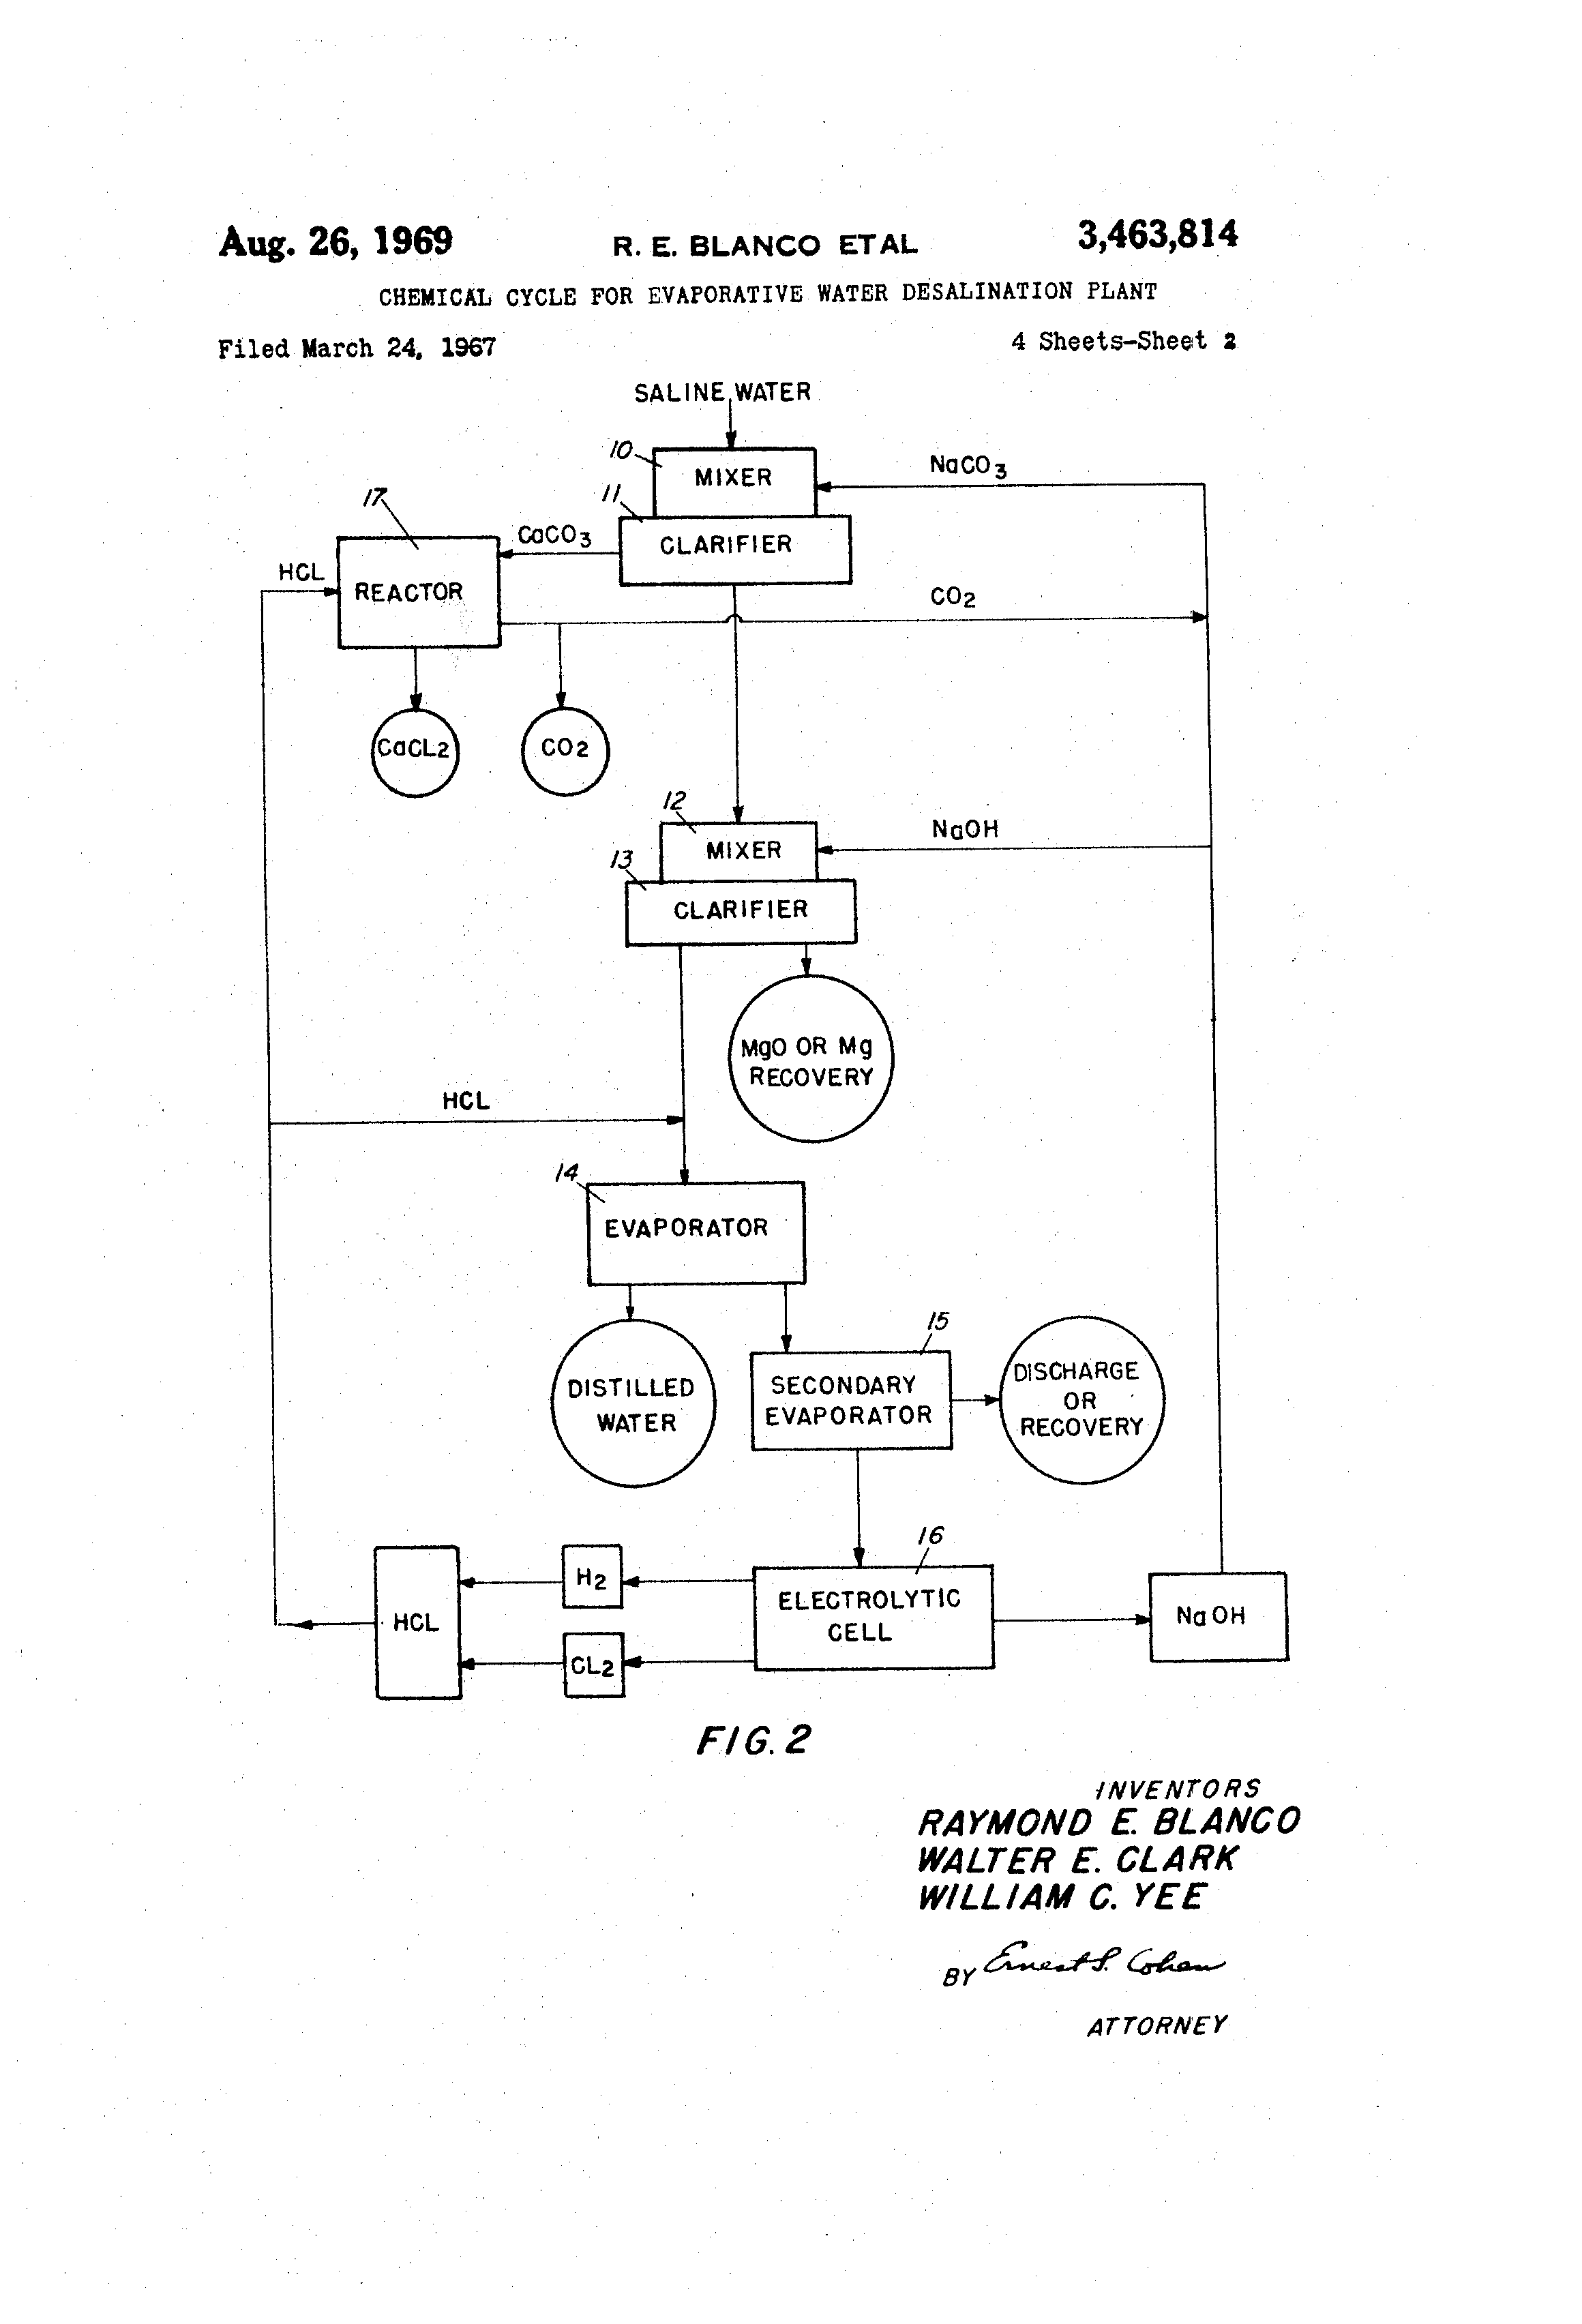 Patent US Chemical cycle for evaporative water